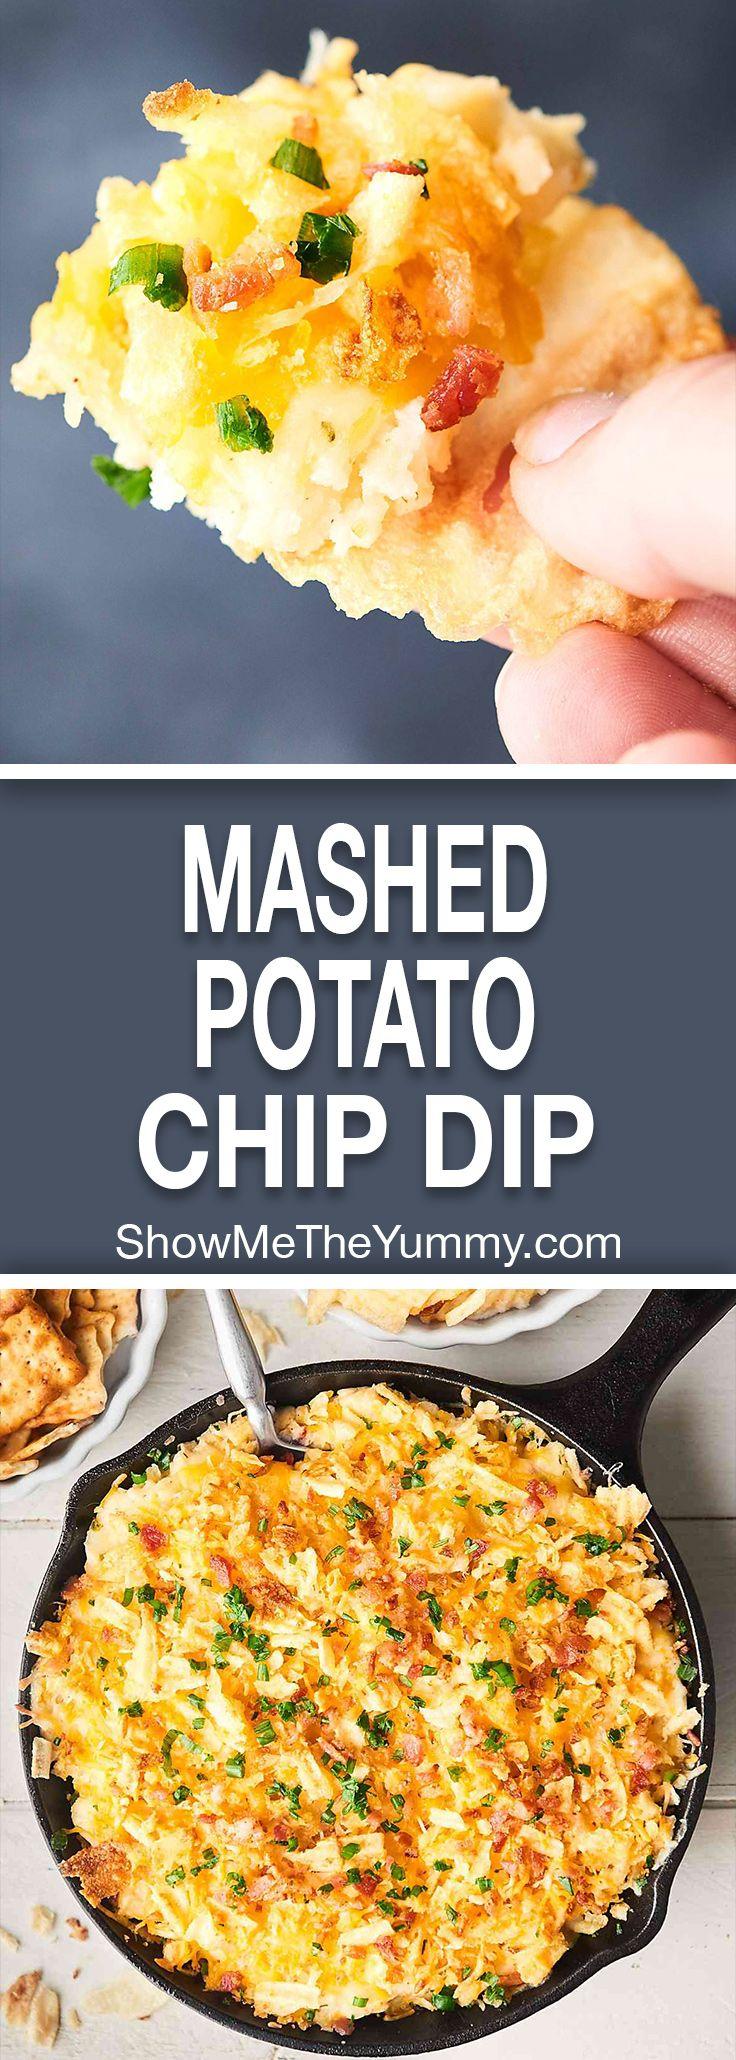 Just when you thought mashed potatoes couldn't get better, I baked them into a dip to create this Easy, Cheesy Mashed Potato Chip Dip. Full of fluffy mashed potatoes, bacon and cheese, and served with potato chips! showmetheyummy.com #chipdip #potatoes